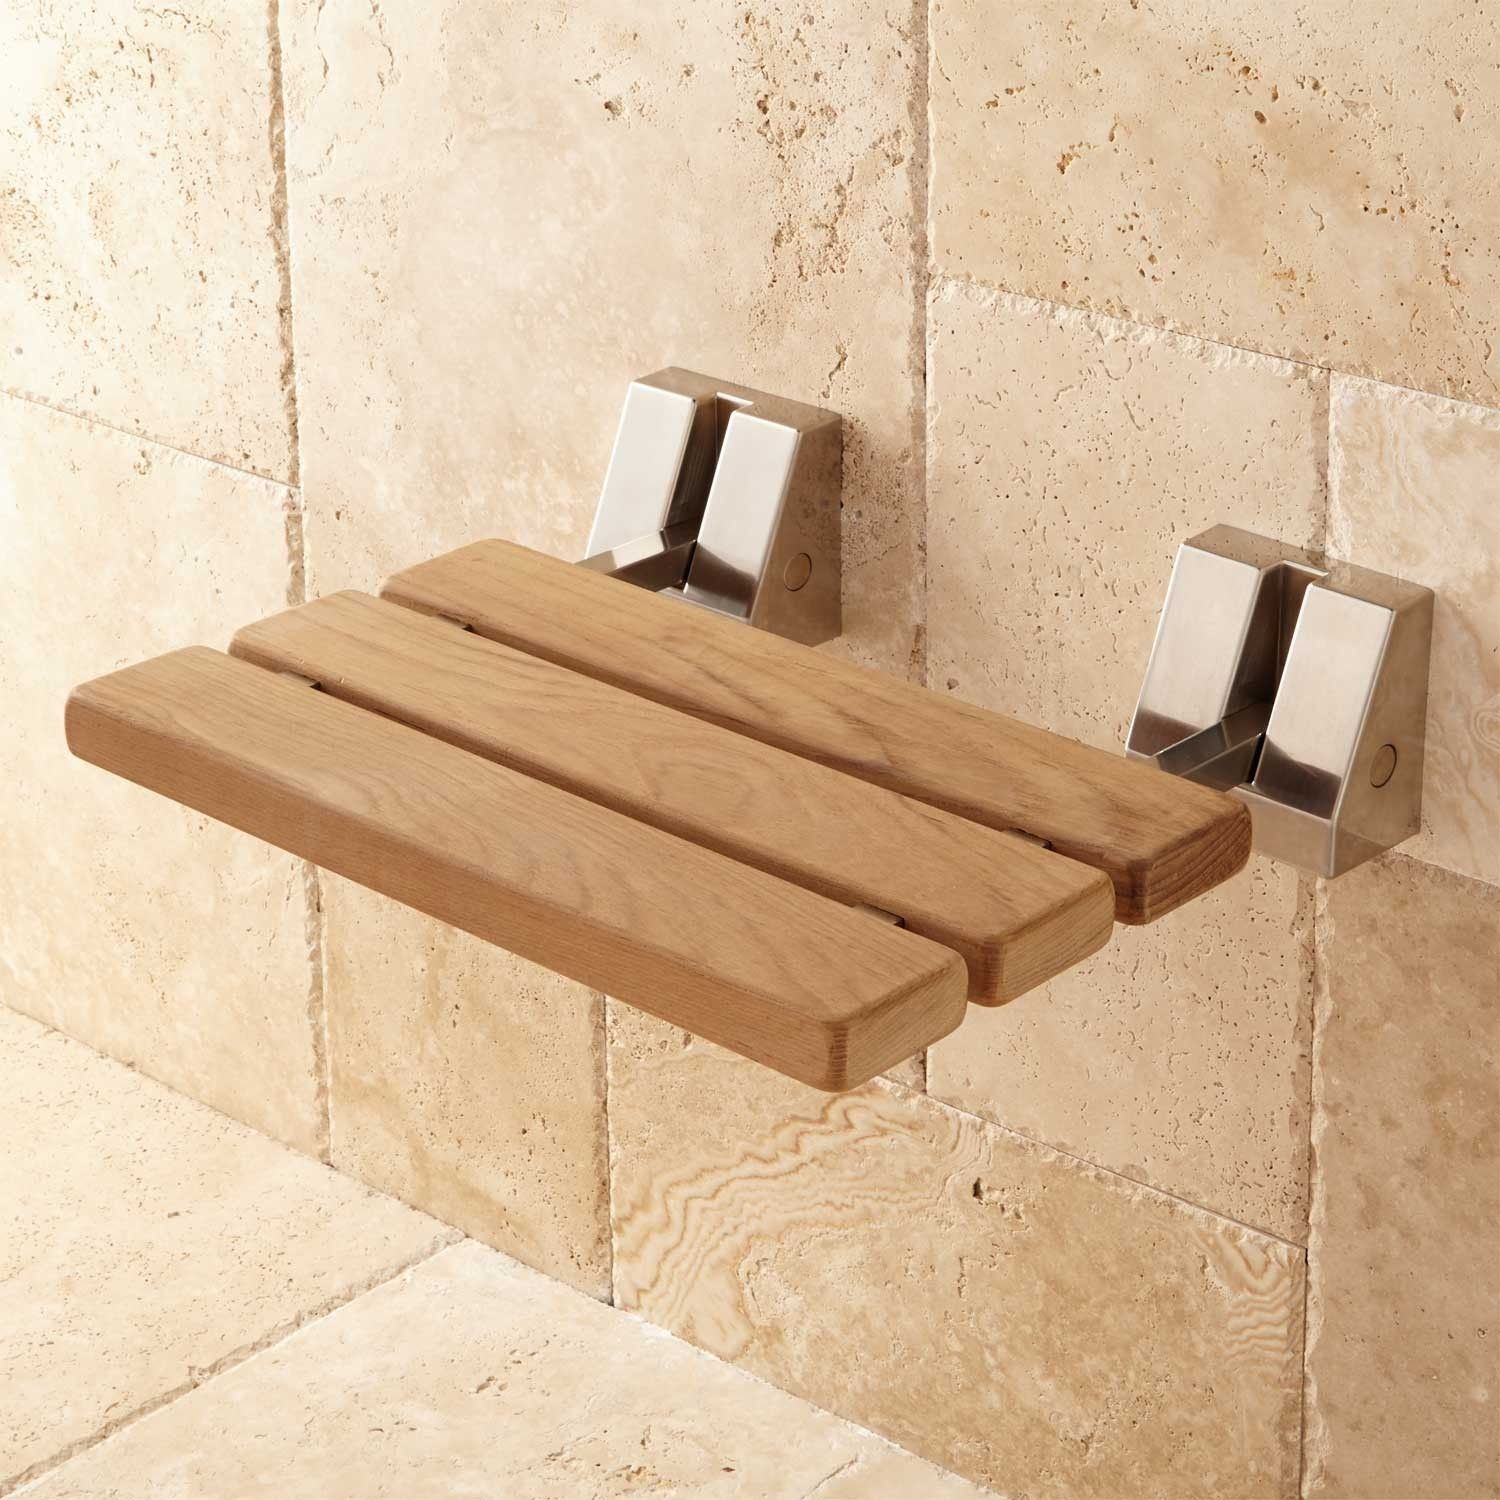 Teak Shower Bench Wall Mounted | http://bottomunion.com | Pinterest ...